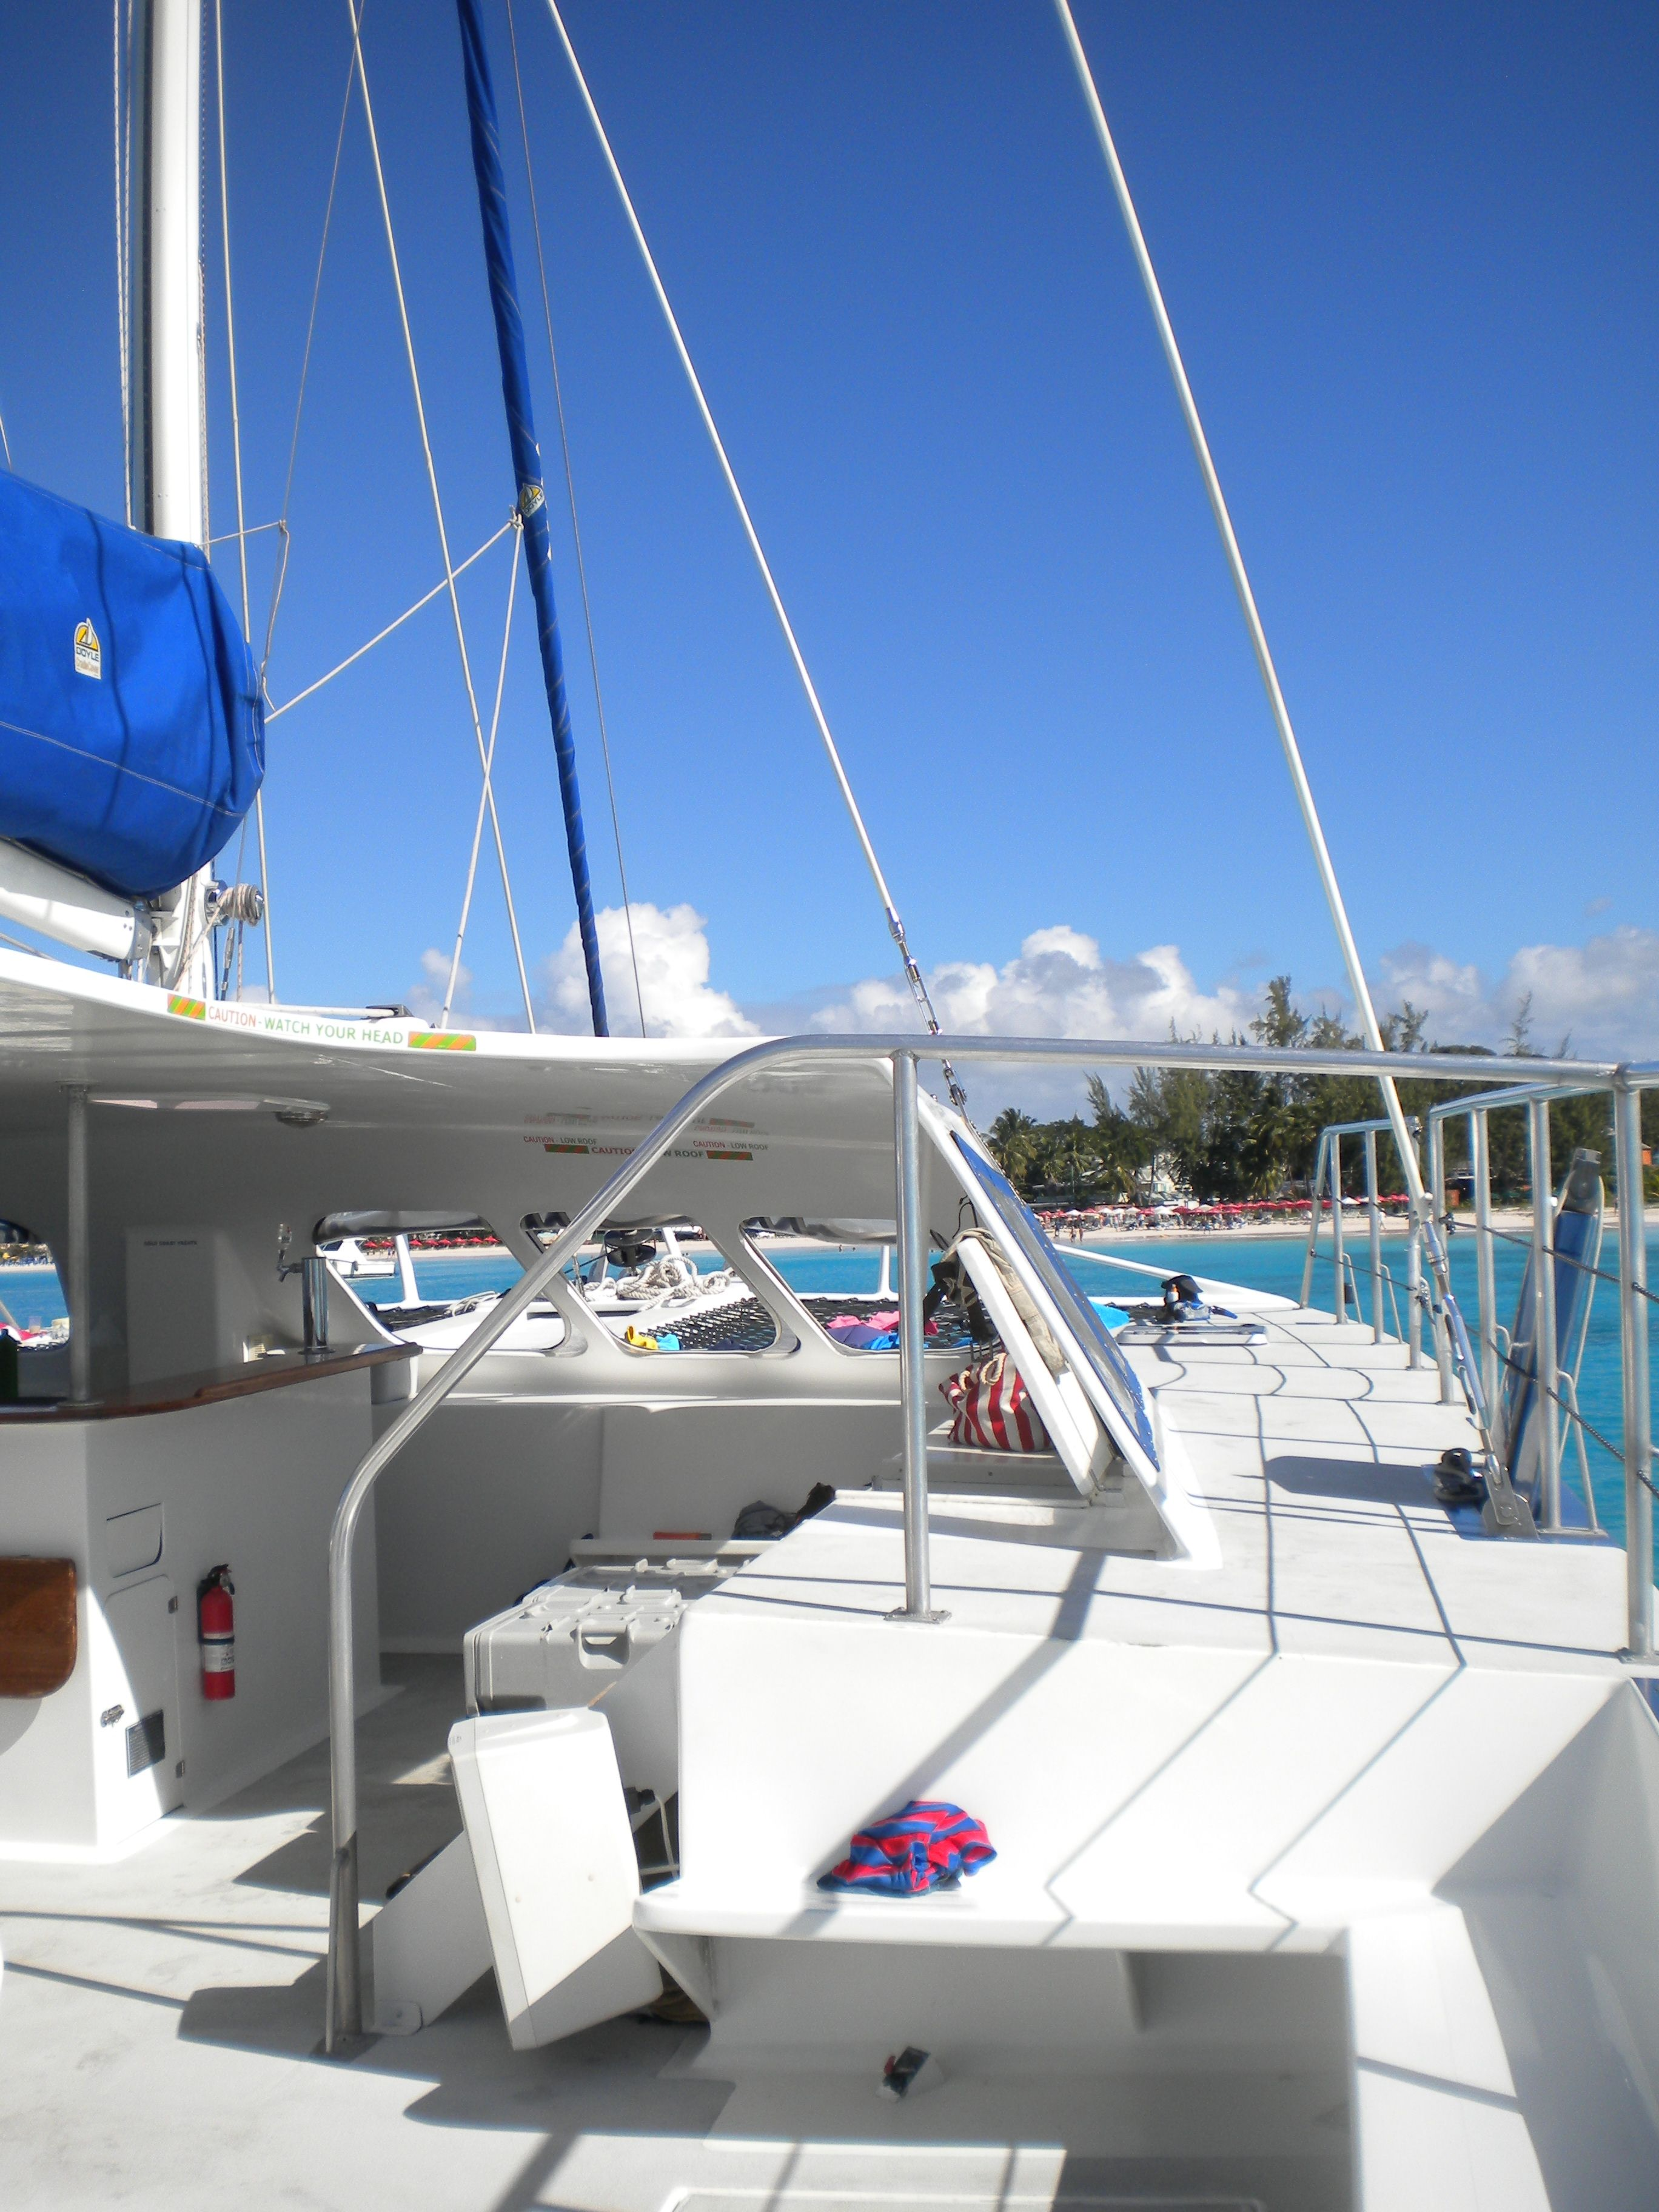 On board a beautiful catamaran. Barbados has some of the best catamaran's around, well kept and with great staff to take care of your every need...